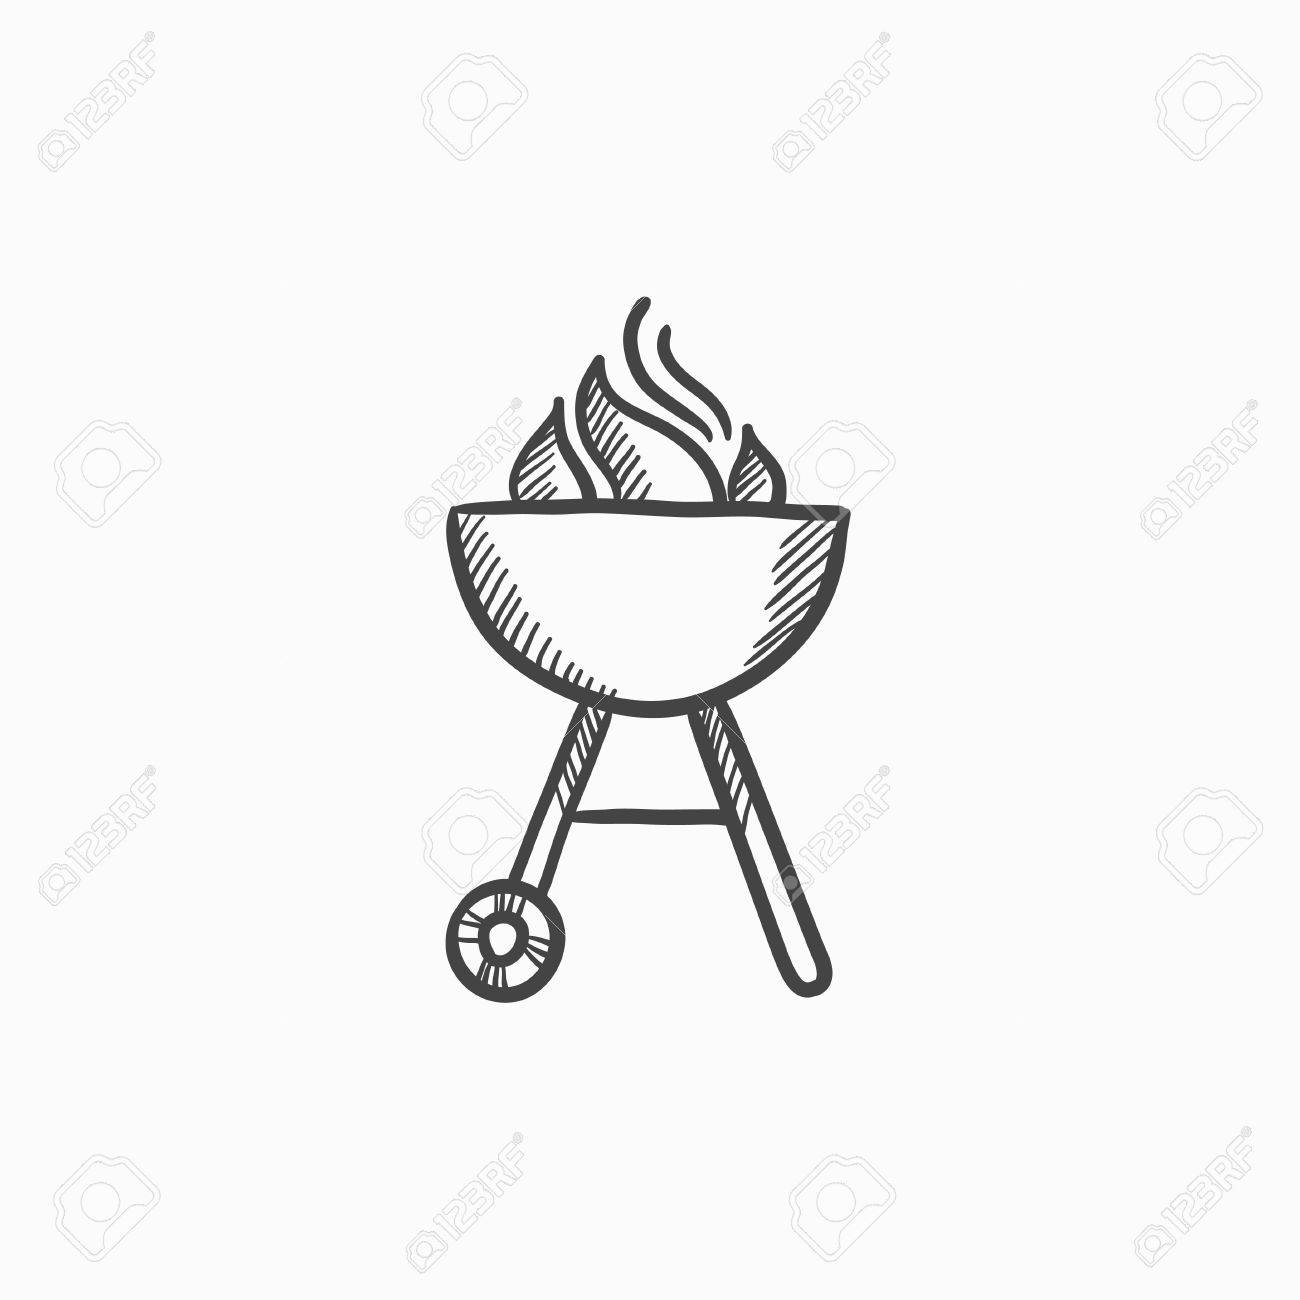 kettle barbecue grill vector sketch icon isolated on background